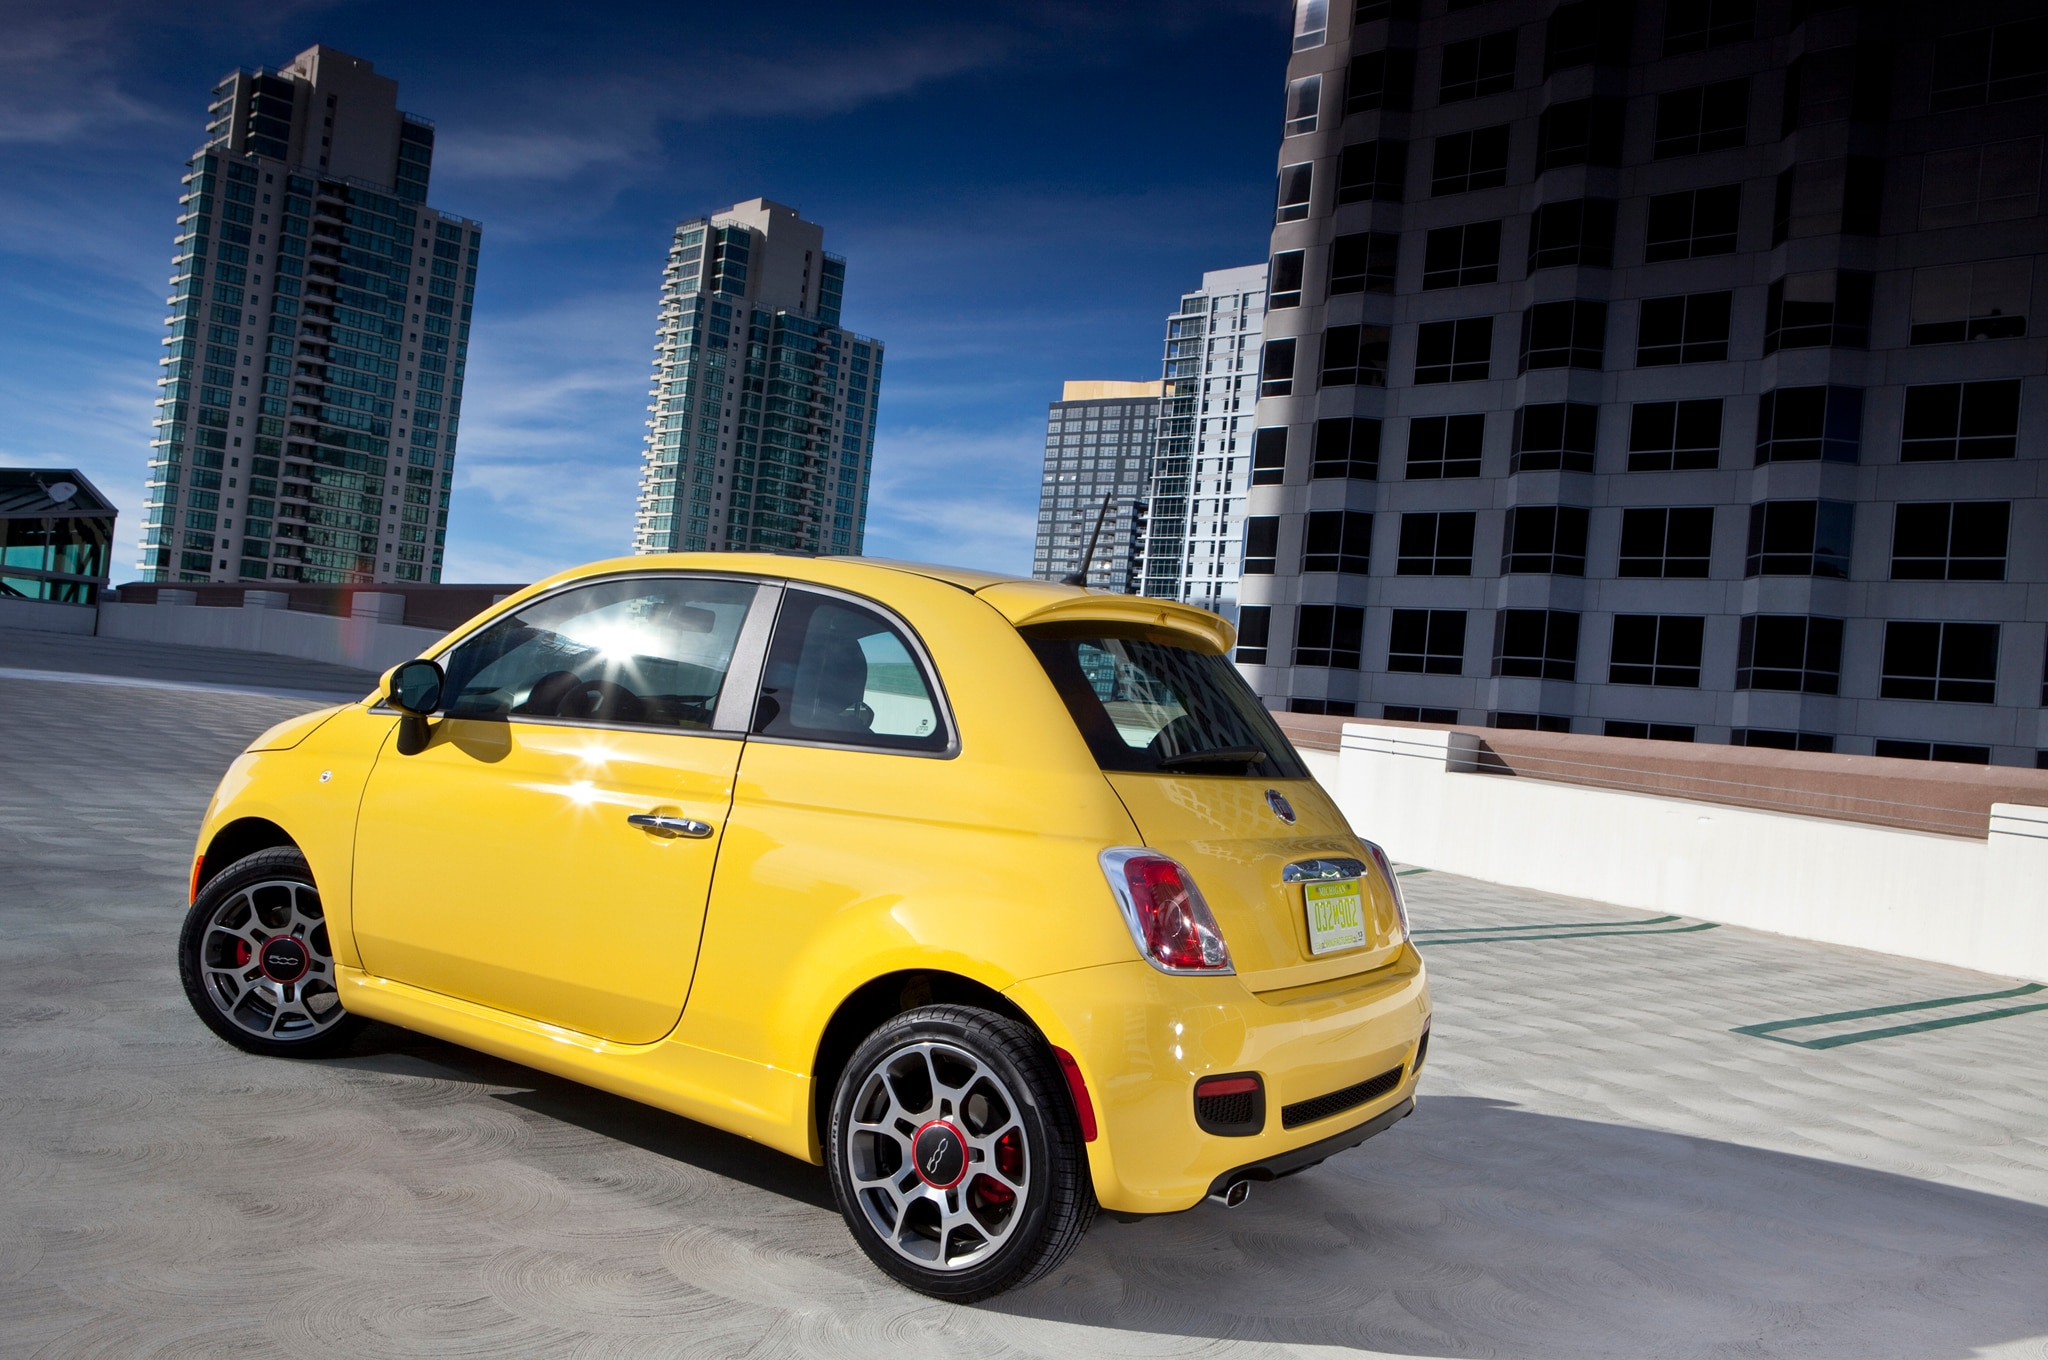 2013 fiat 500 cattiva ready to hit the streets. Black Bedroom Furniture Sets. Home Design Ideas